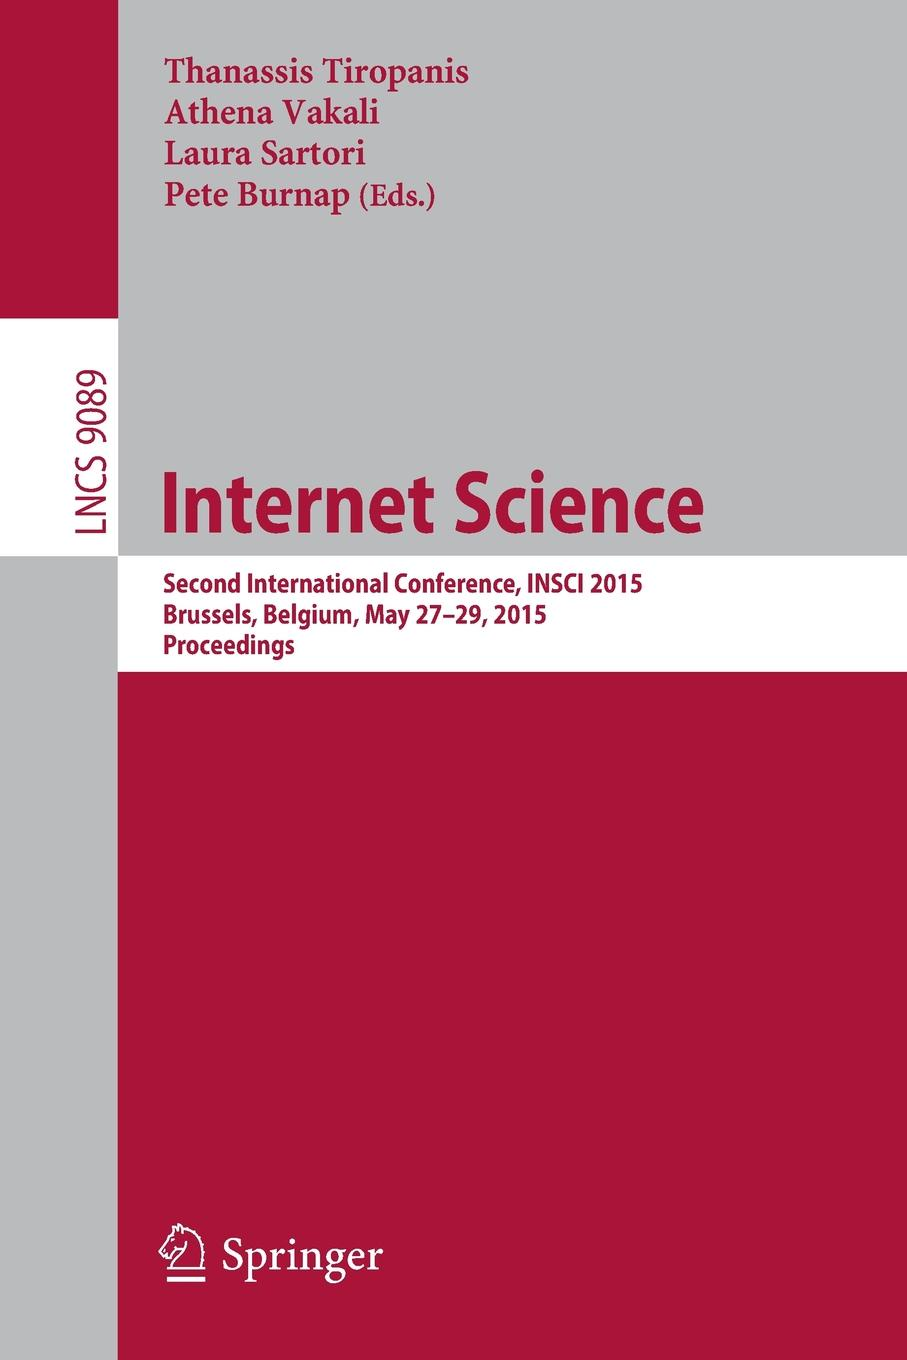 Internet Science. Second International Conference, INSCI 2015, Brussels, Belgium, May 27-29, 2015, Proceedings brussels type